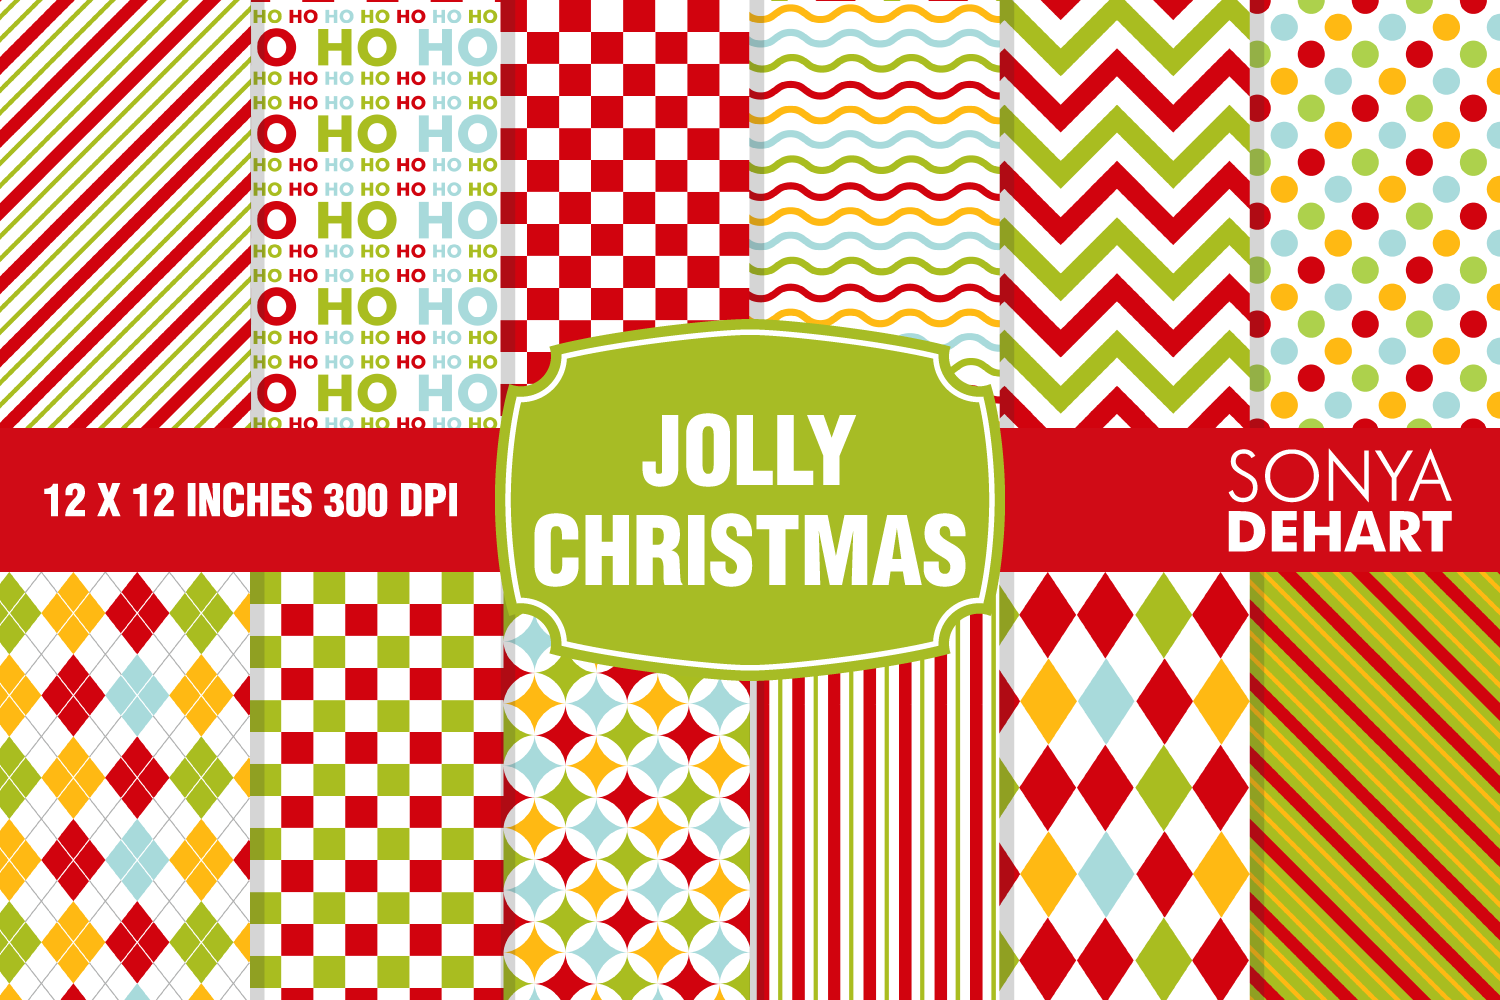 Jolly Christmas Red and Green Digital Paper Pattern Pack example image 1